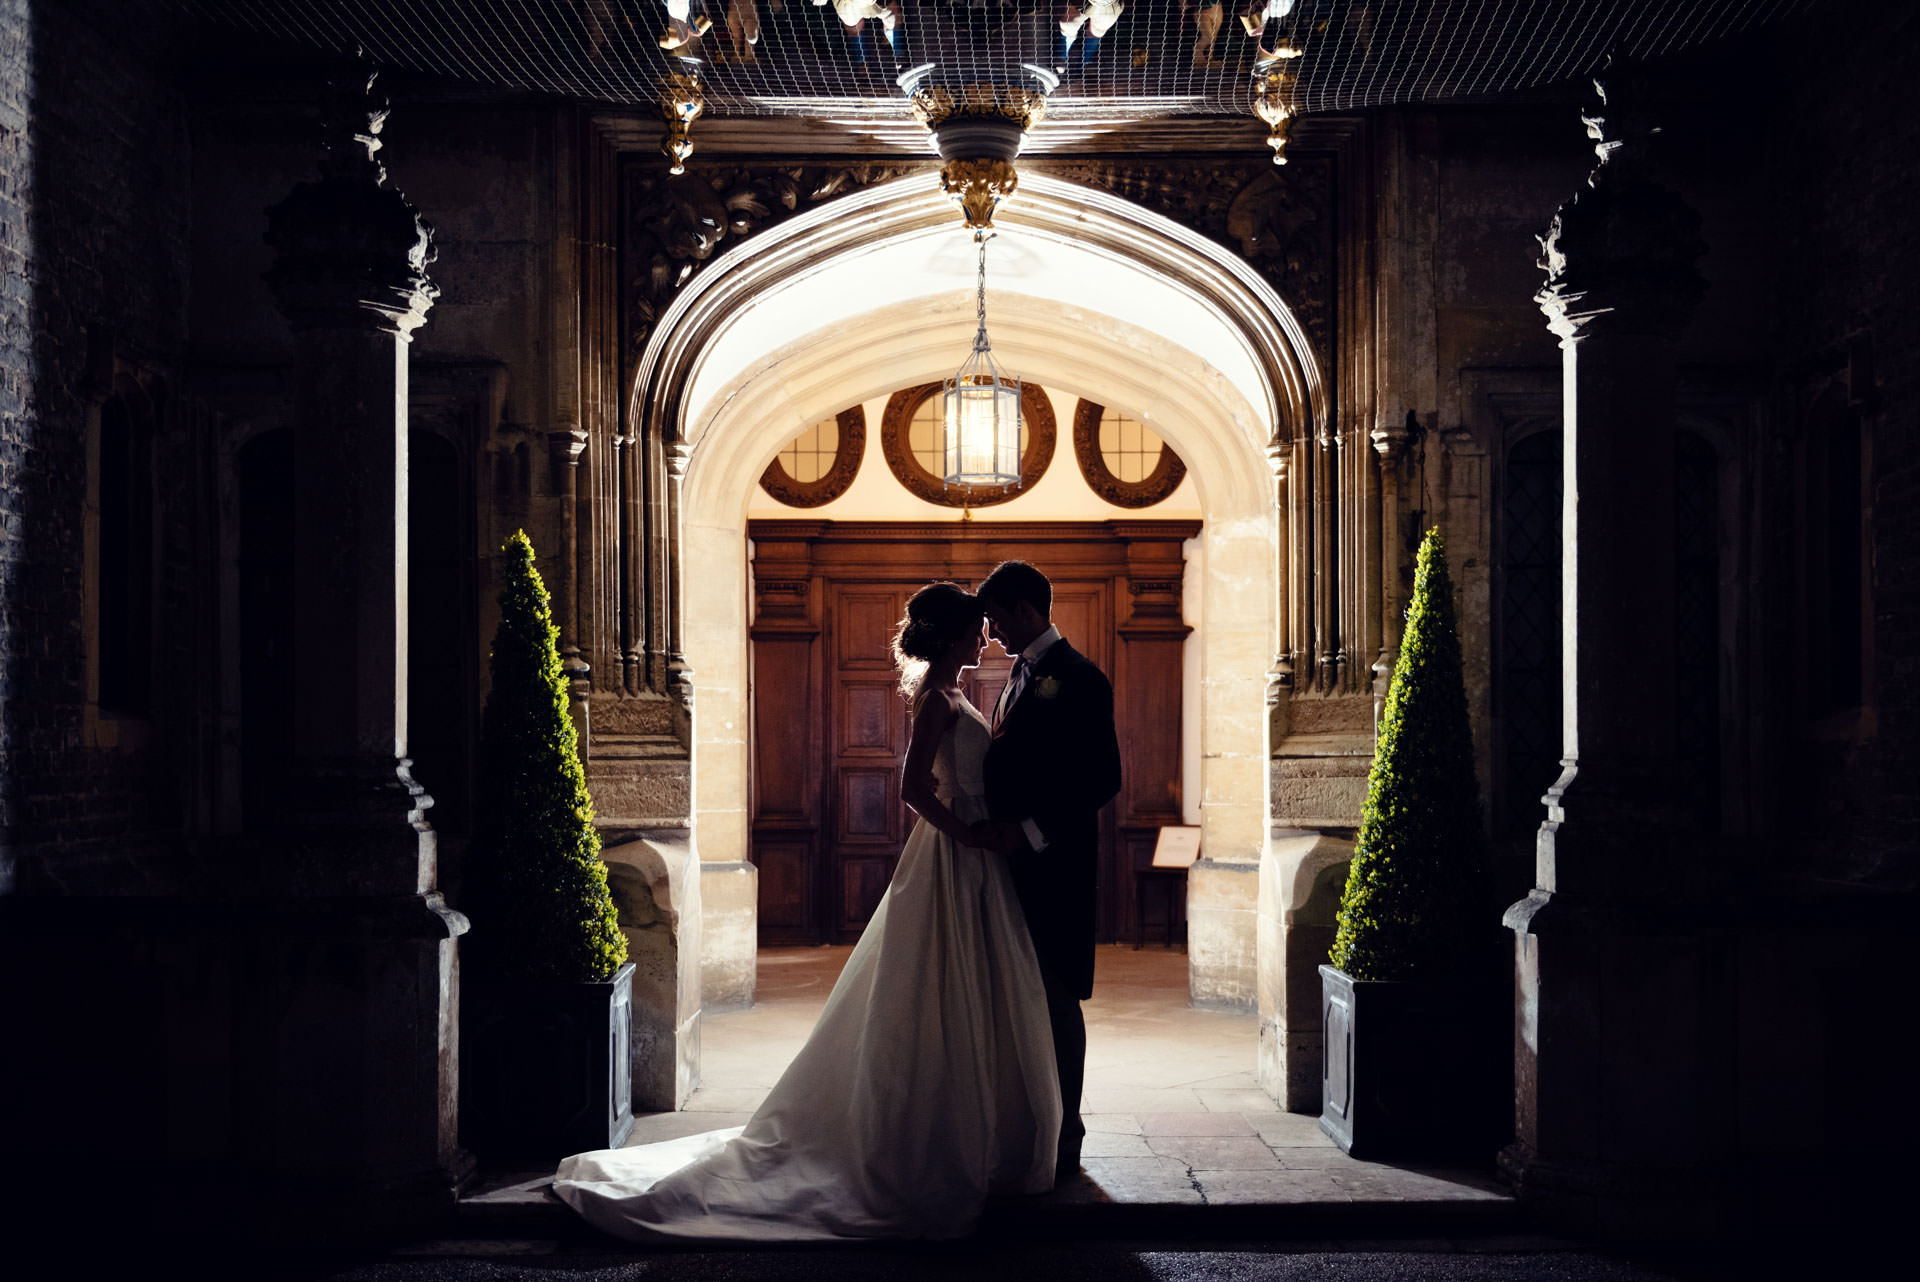 A silhouette of a newly married couple embrace in the hallway at Hengrave Hall